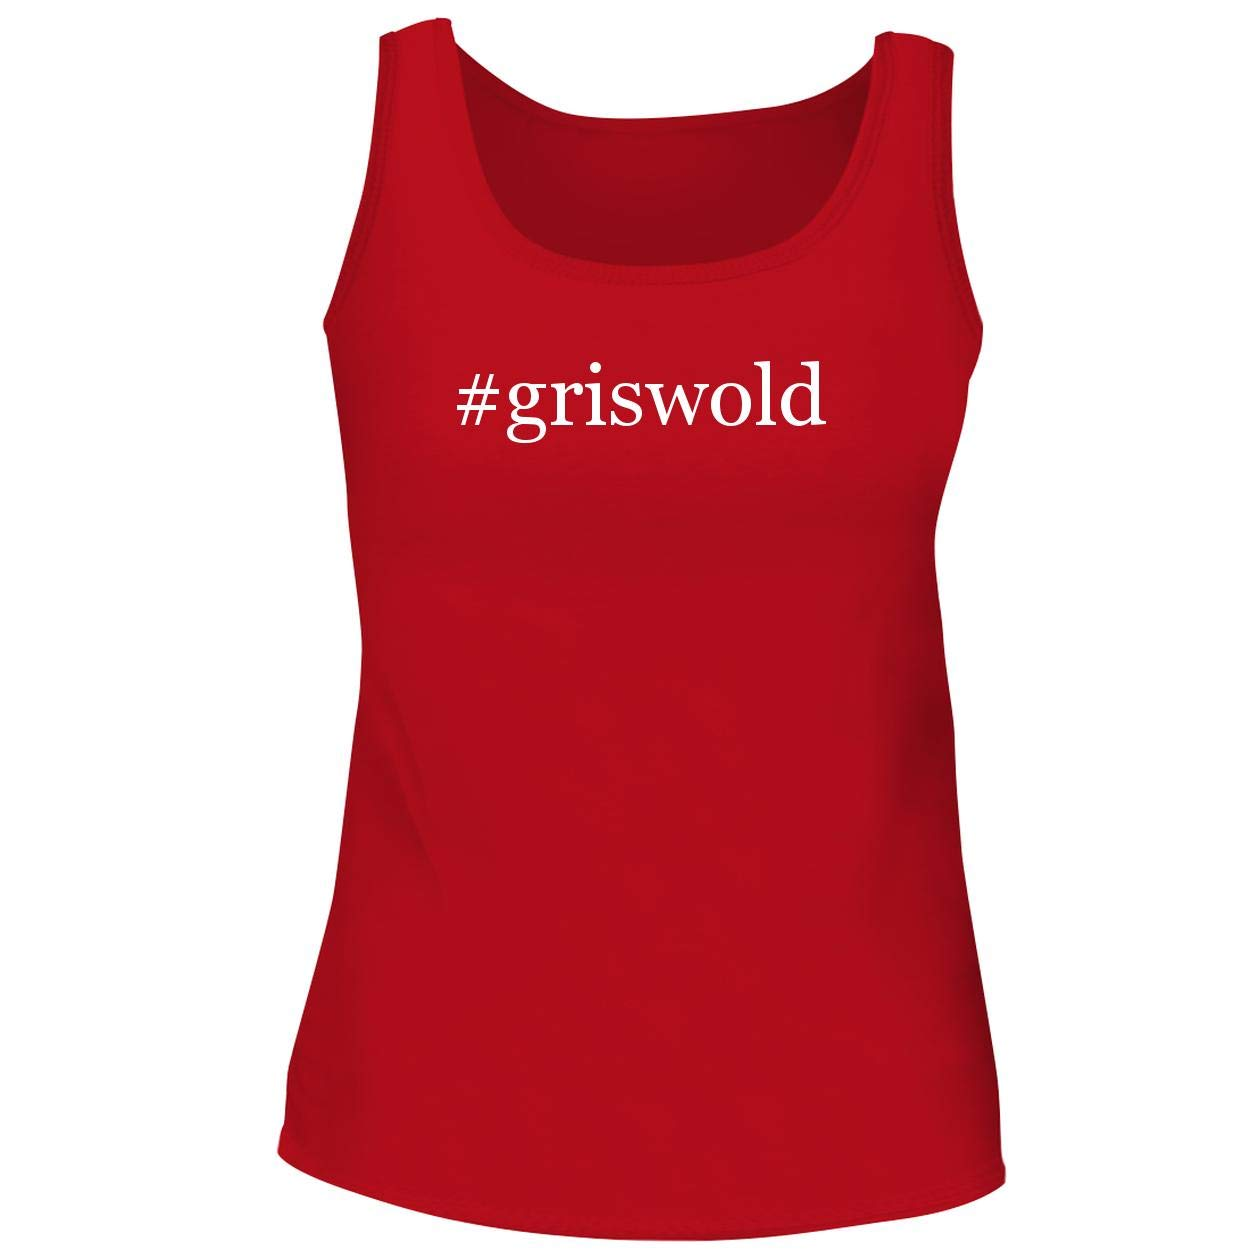 BH Cool Designs #Griswold - Cute Women